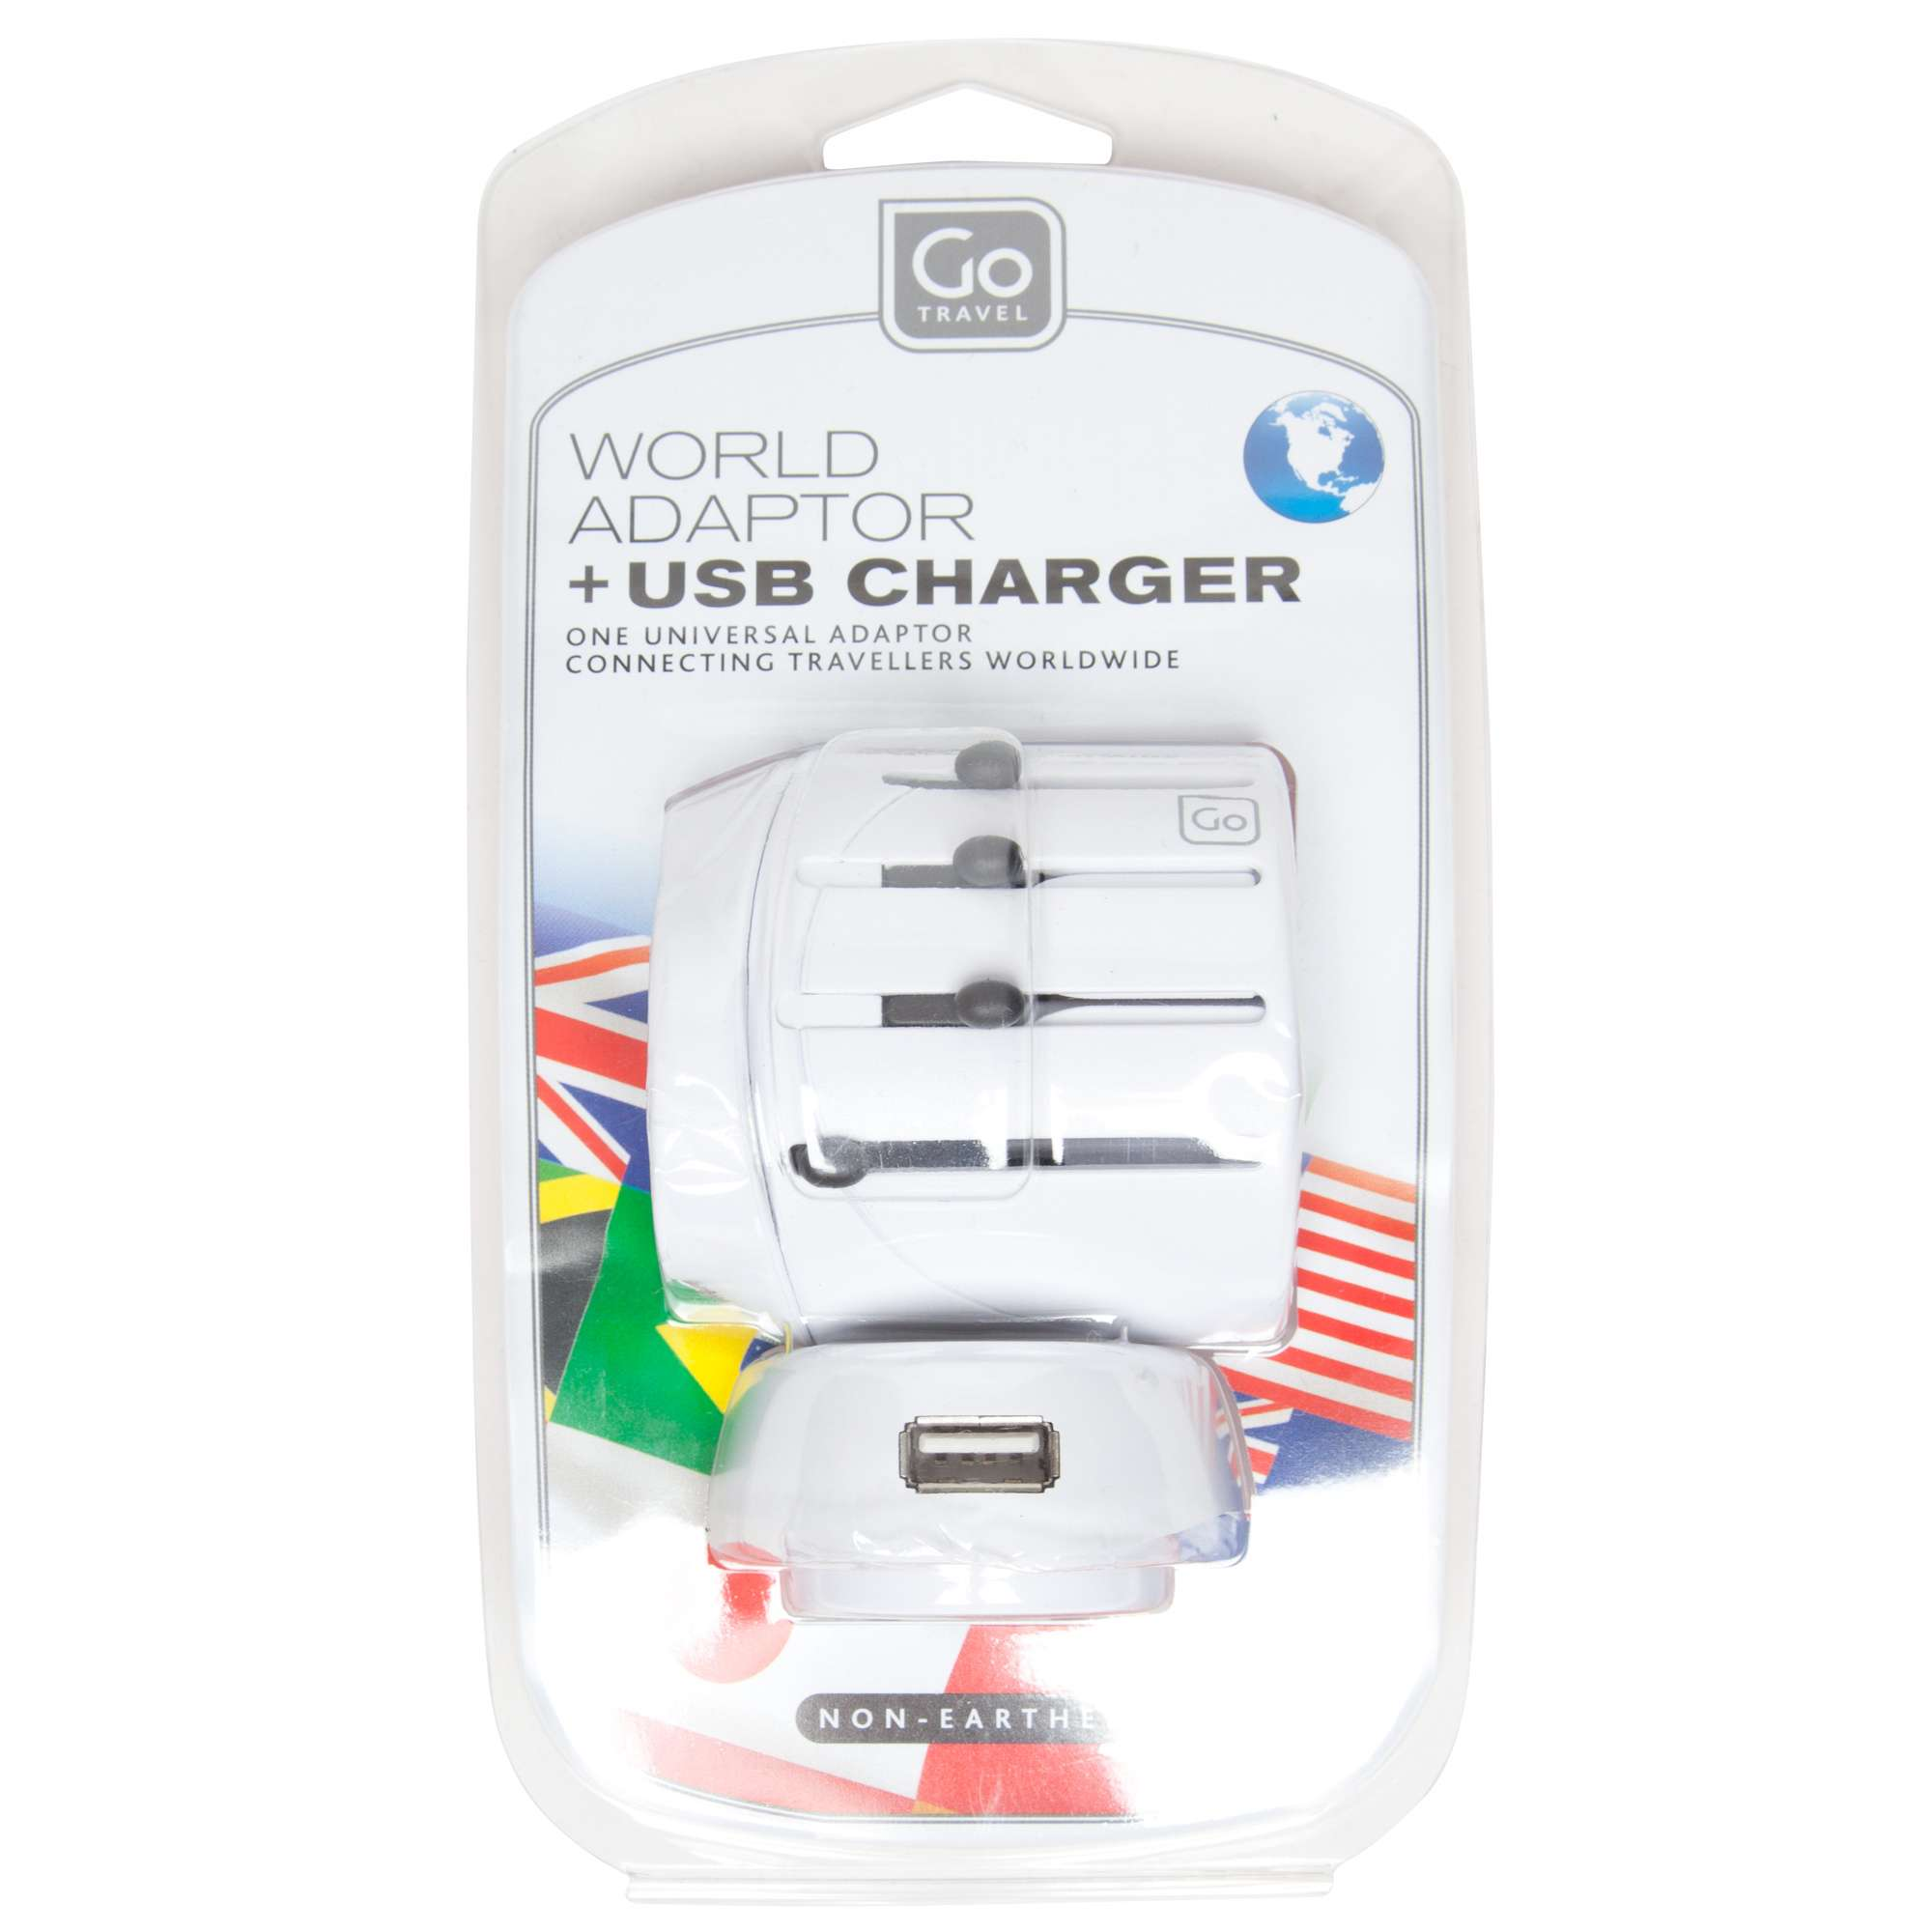 DESIGN GO World Adaptor and USB Charger